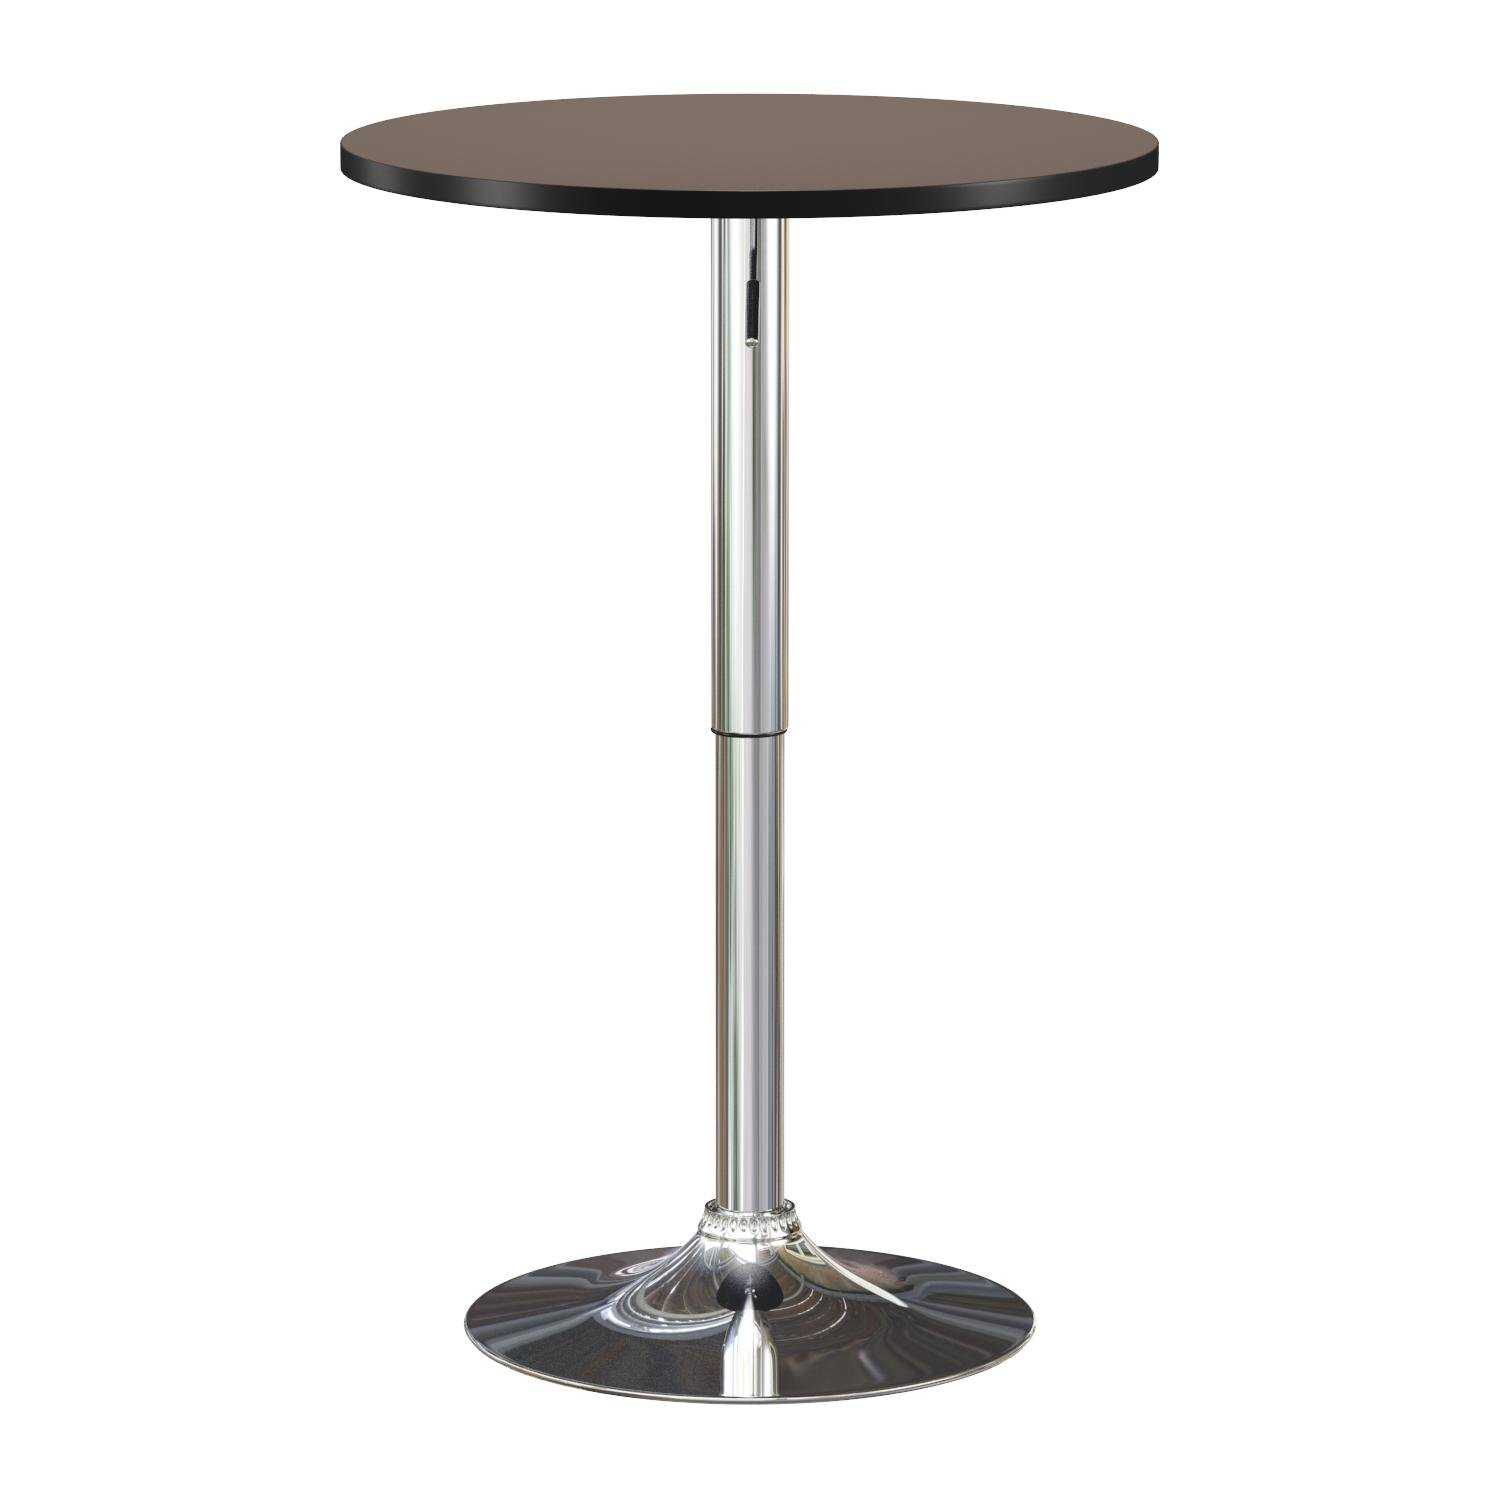 Roundhill Furniture Adjustable Height Wood and Chrome Metal Bar Table, Black